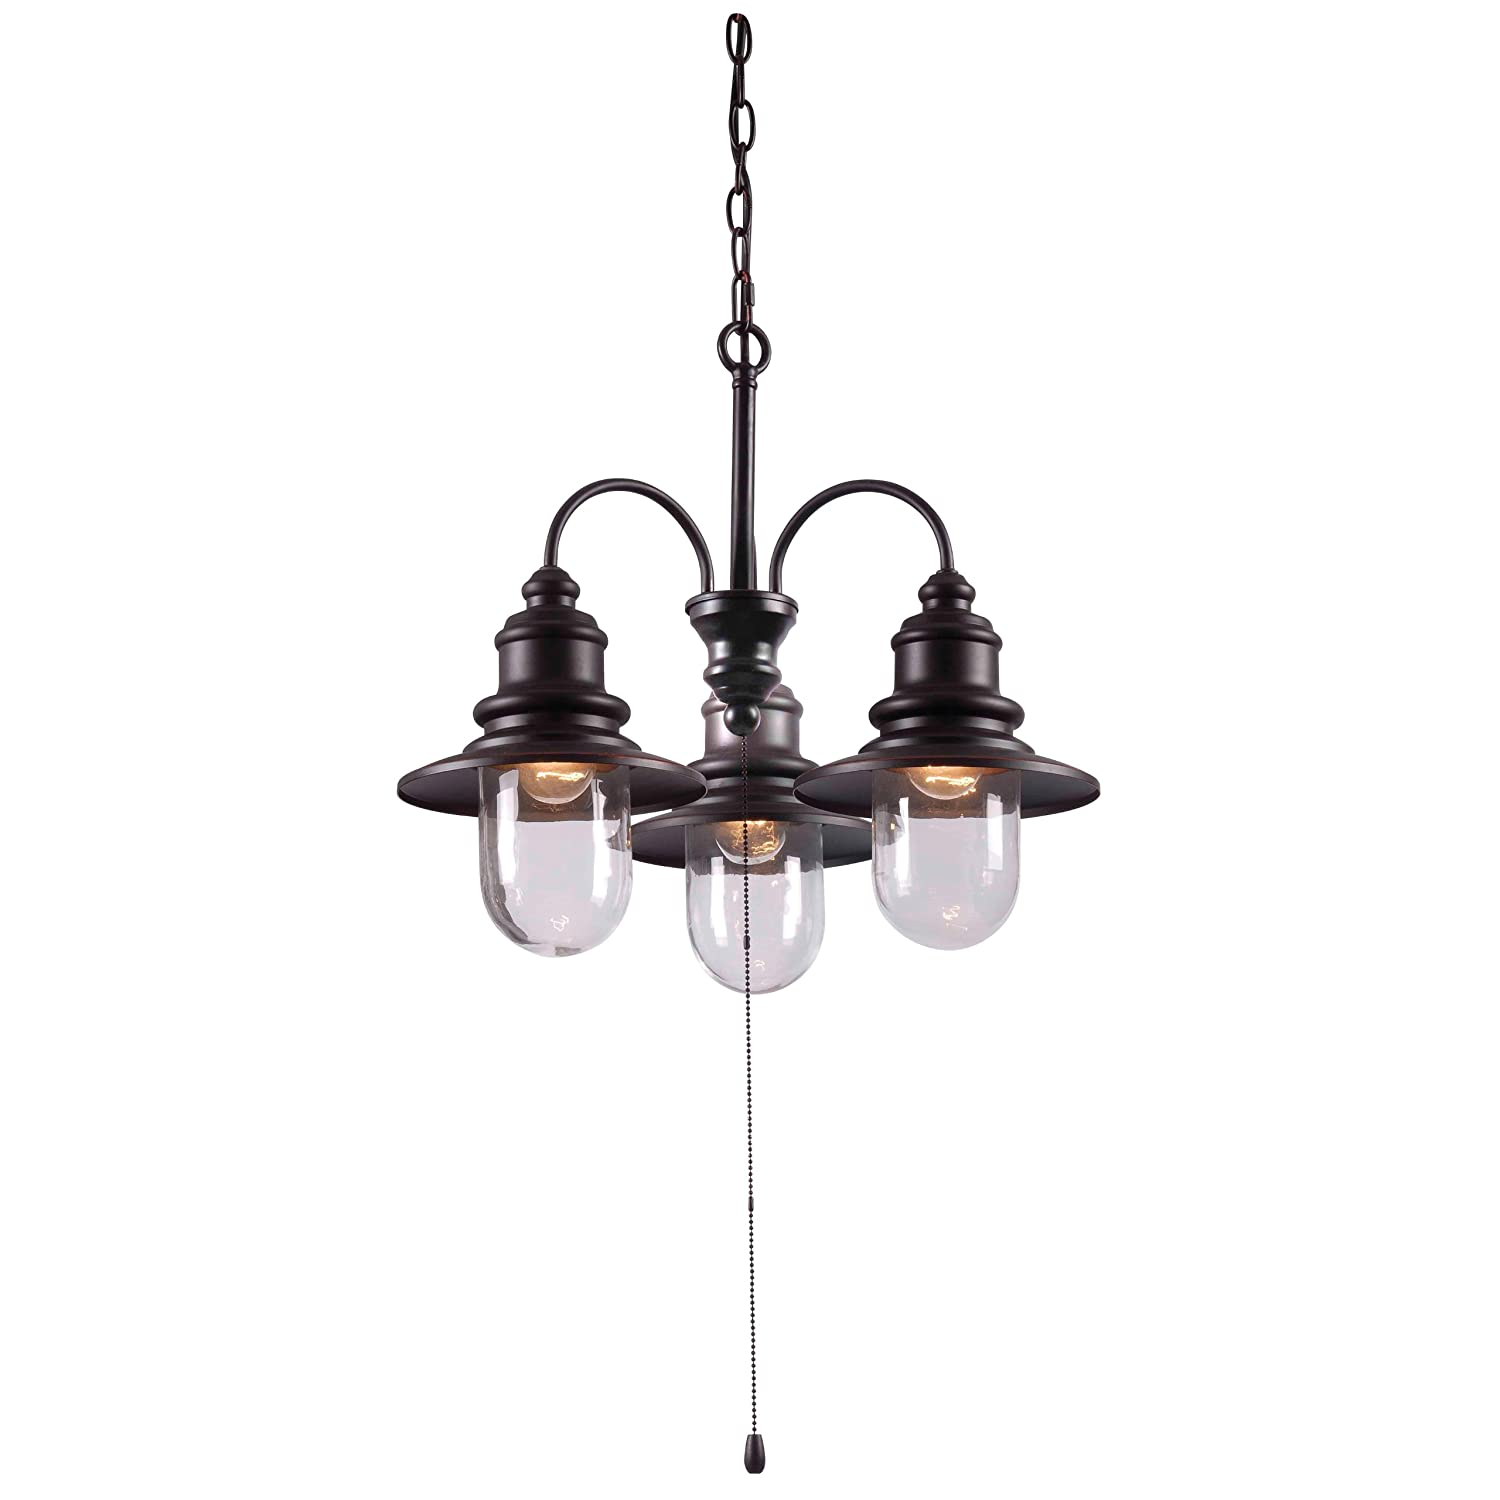 Kenroy Home ORB Broadcast 3 Light Outdoor Chandelier